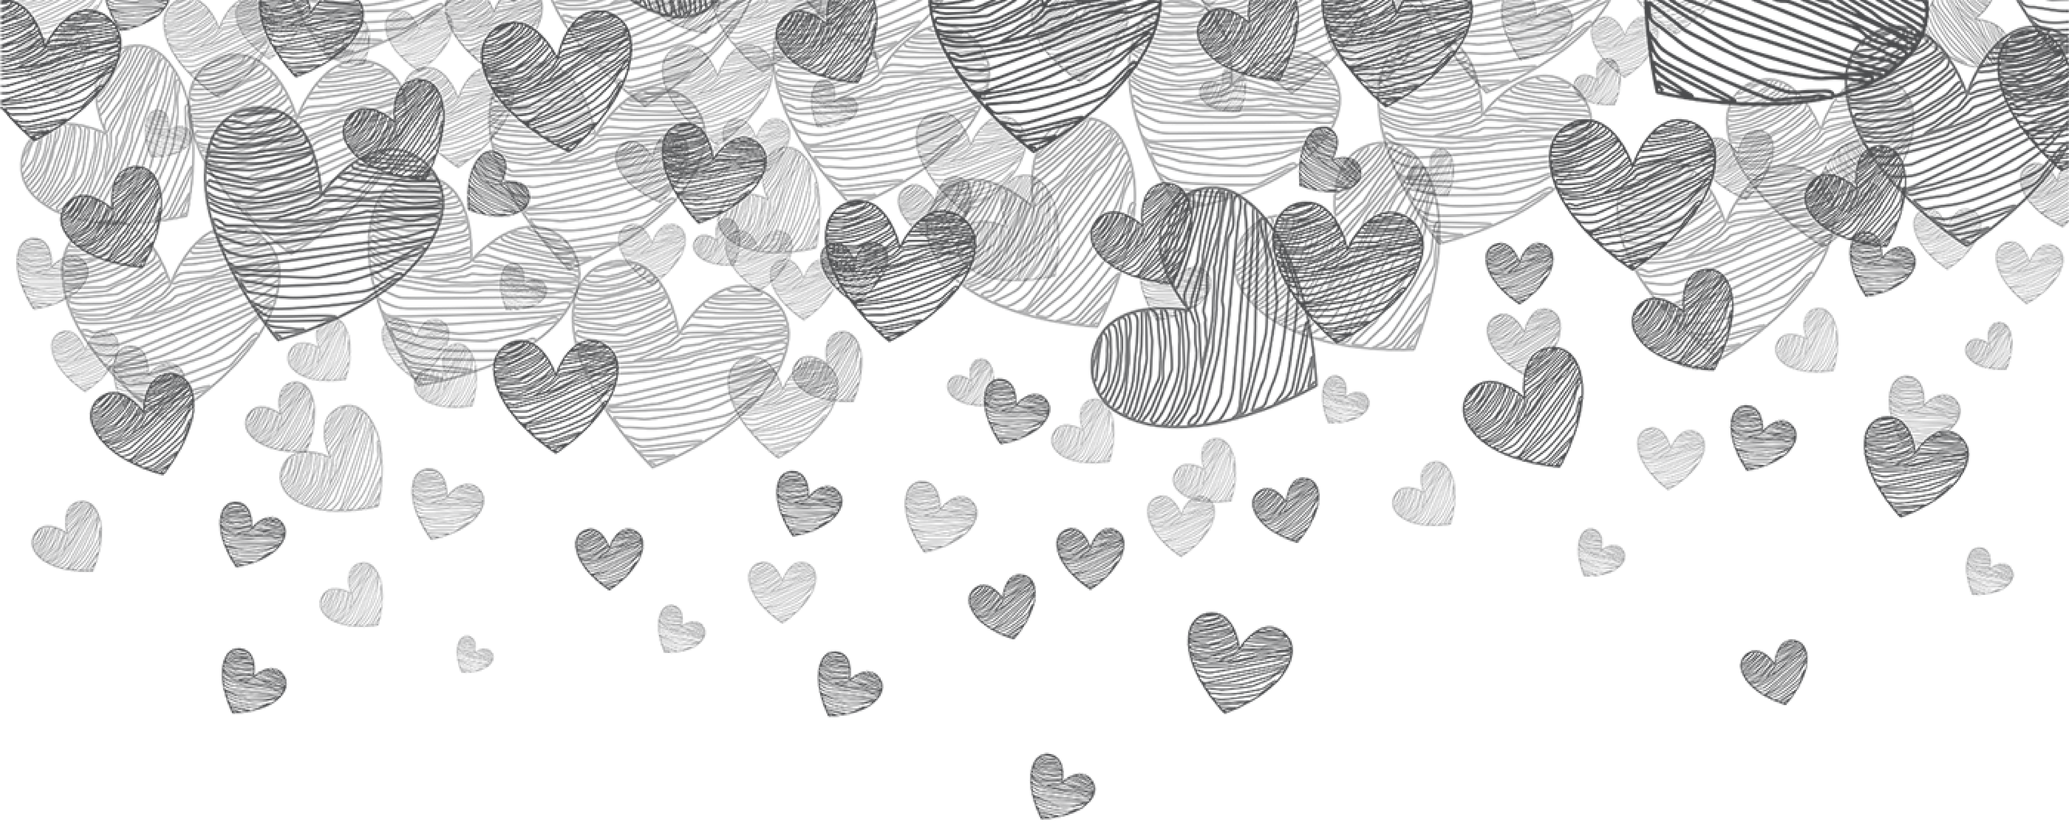 just hearts.png